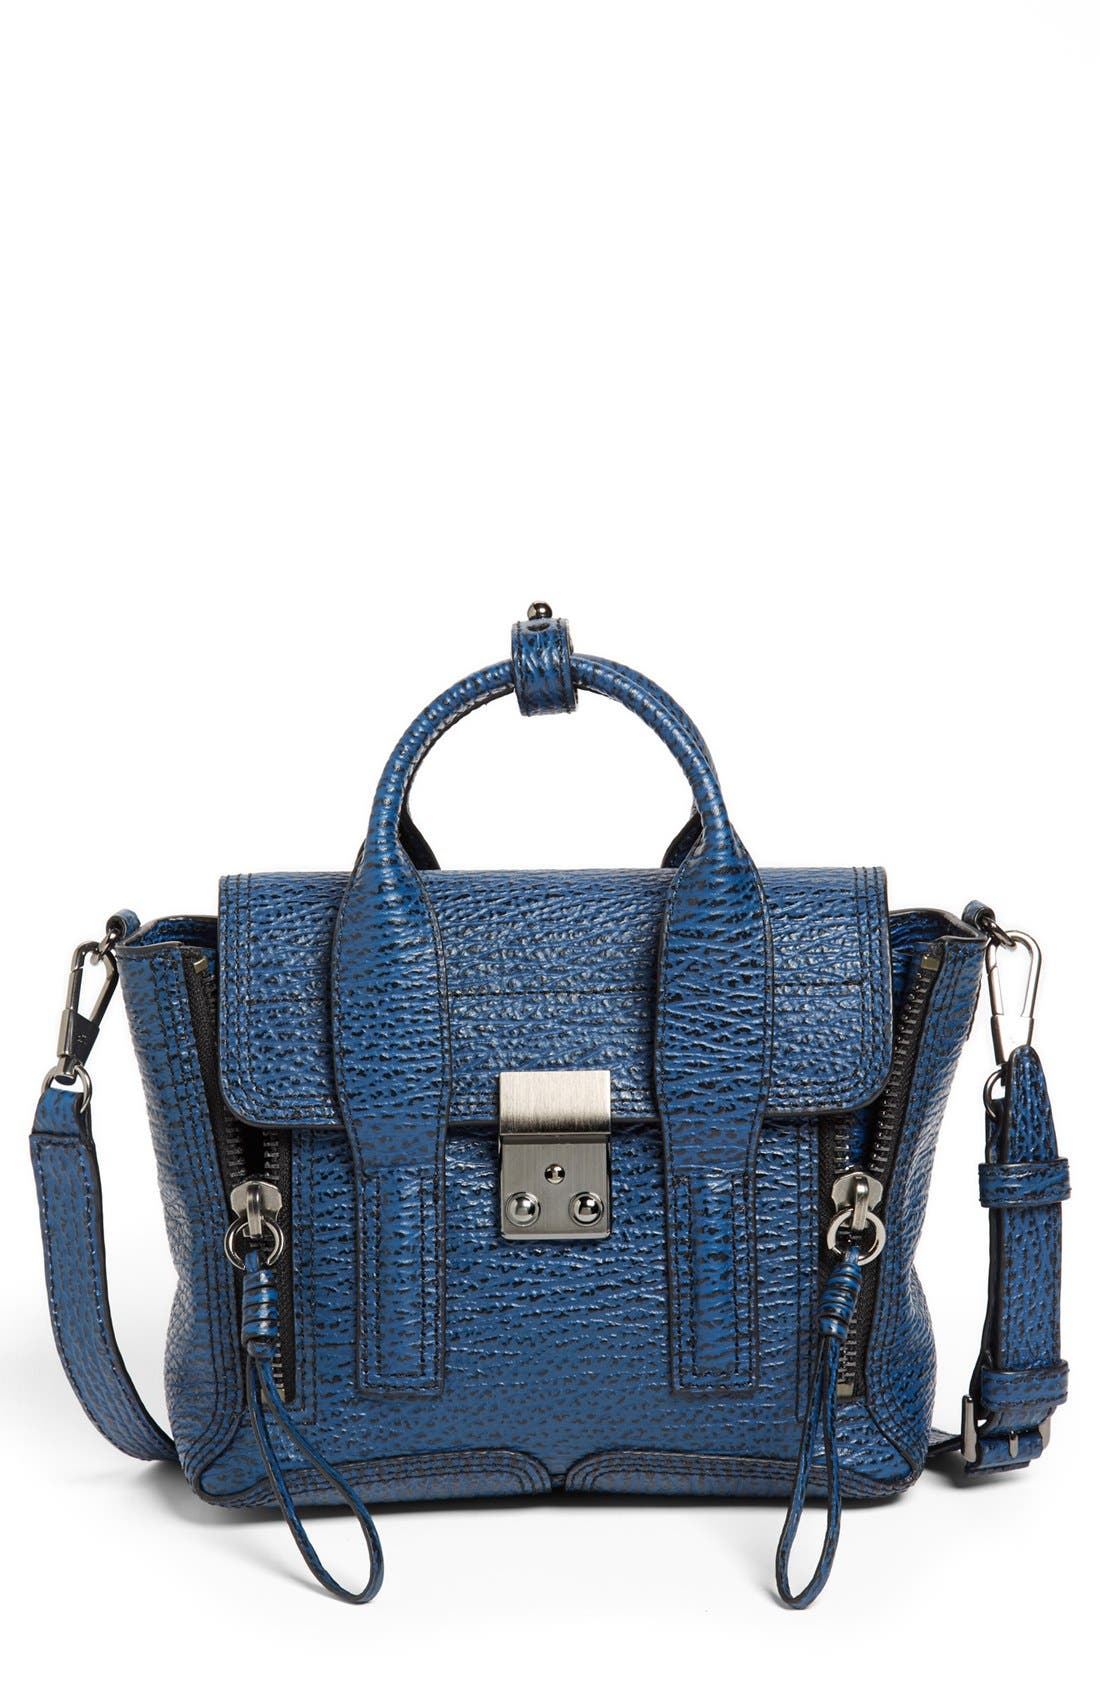 Alternate Image 1 Selected - 3.1 Phillip Lim 'Mini Pashli' Leather Satchel